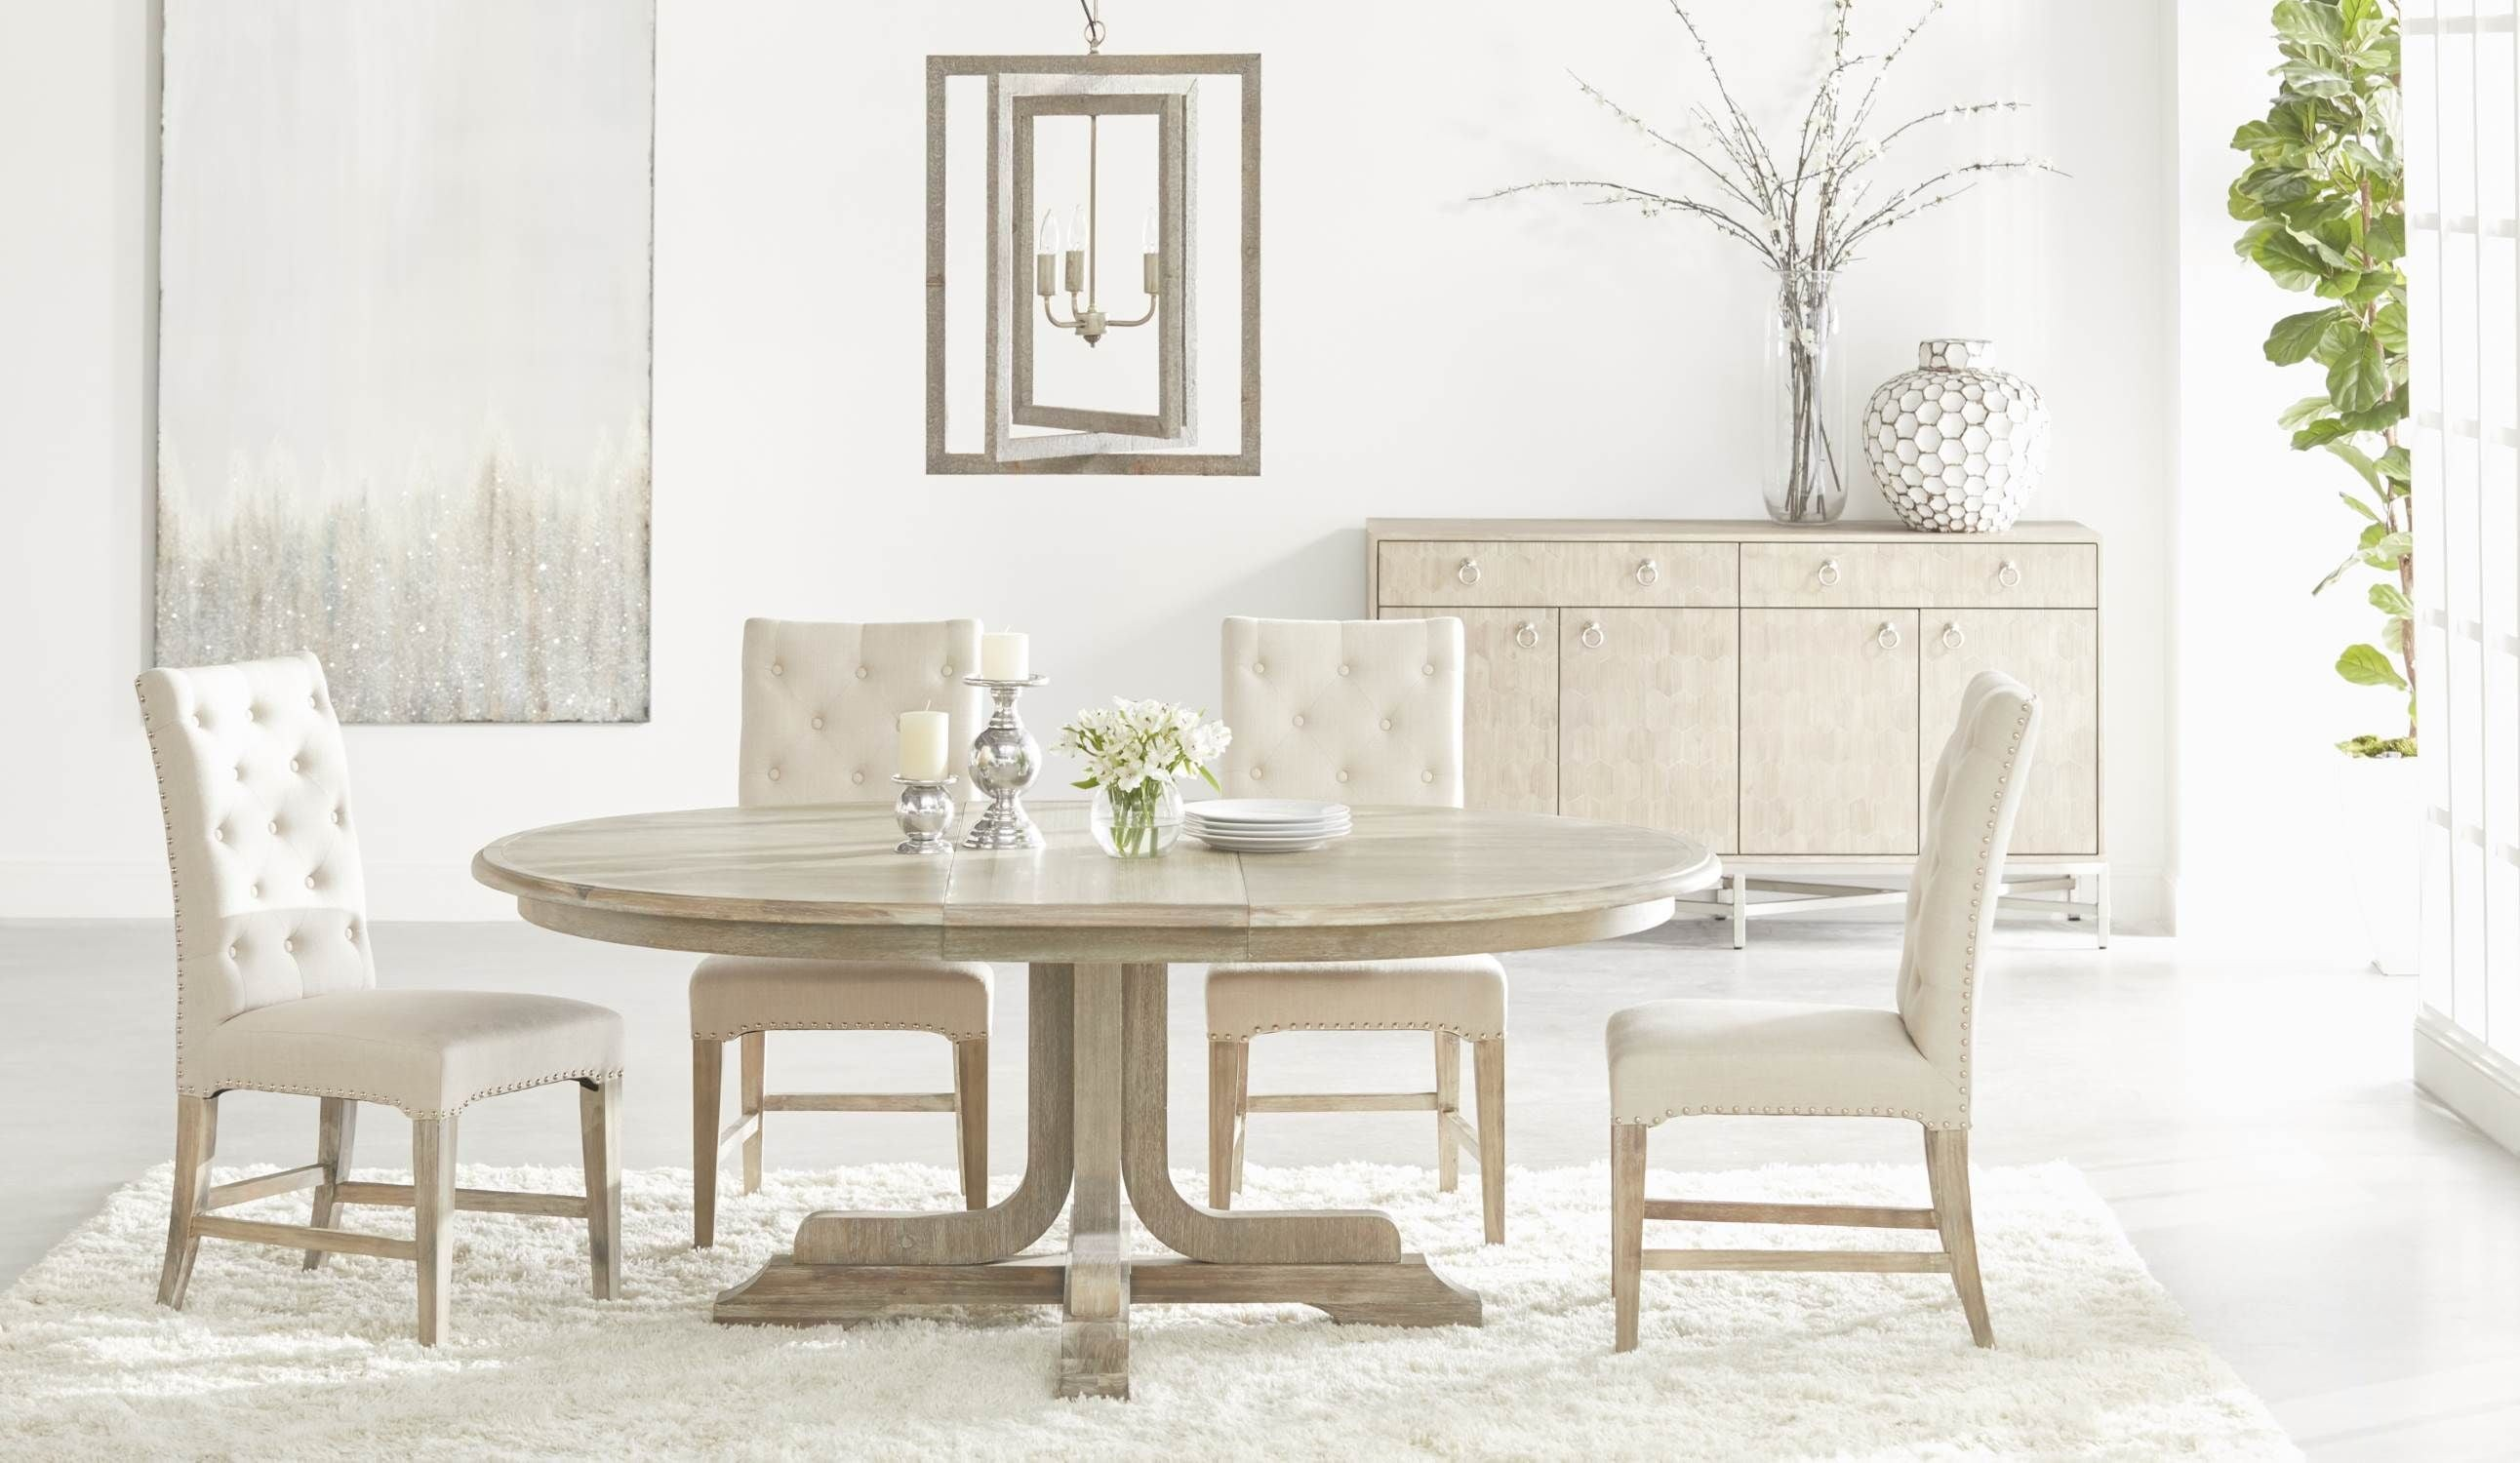 Torrey Natural Gray 60 Extendable Round Dining Room Set With Wilshire Stone Chair Media